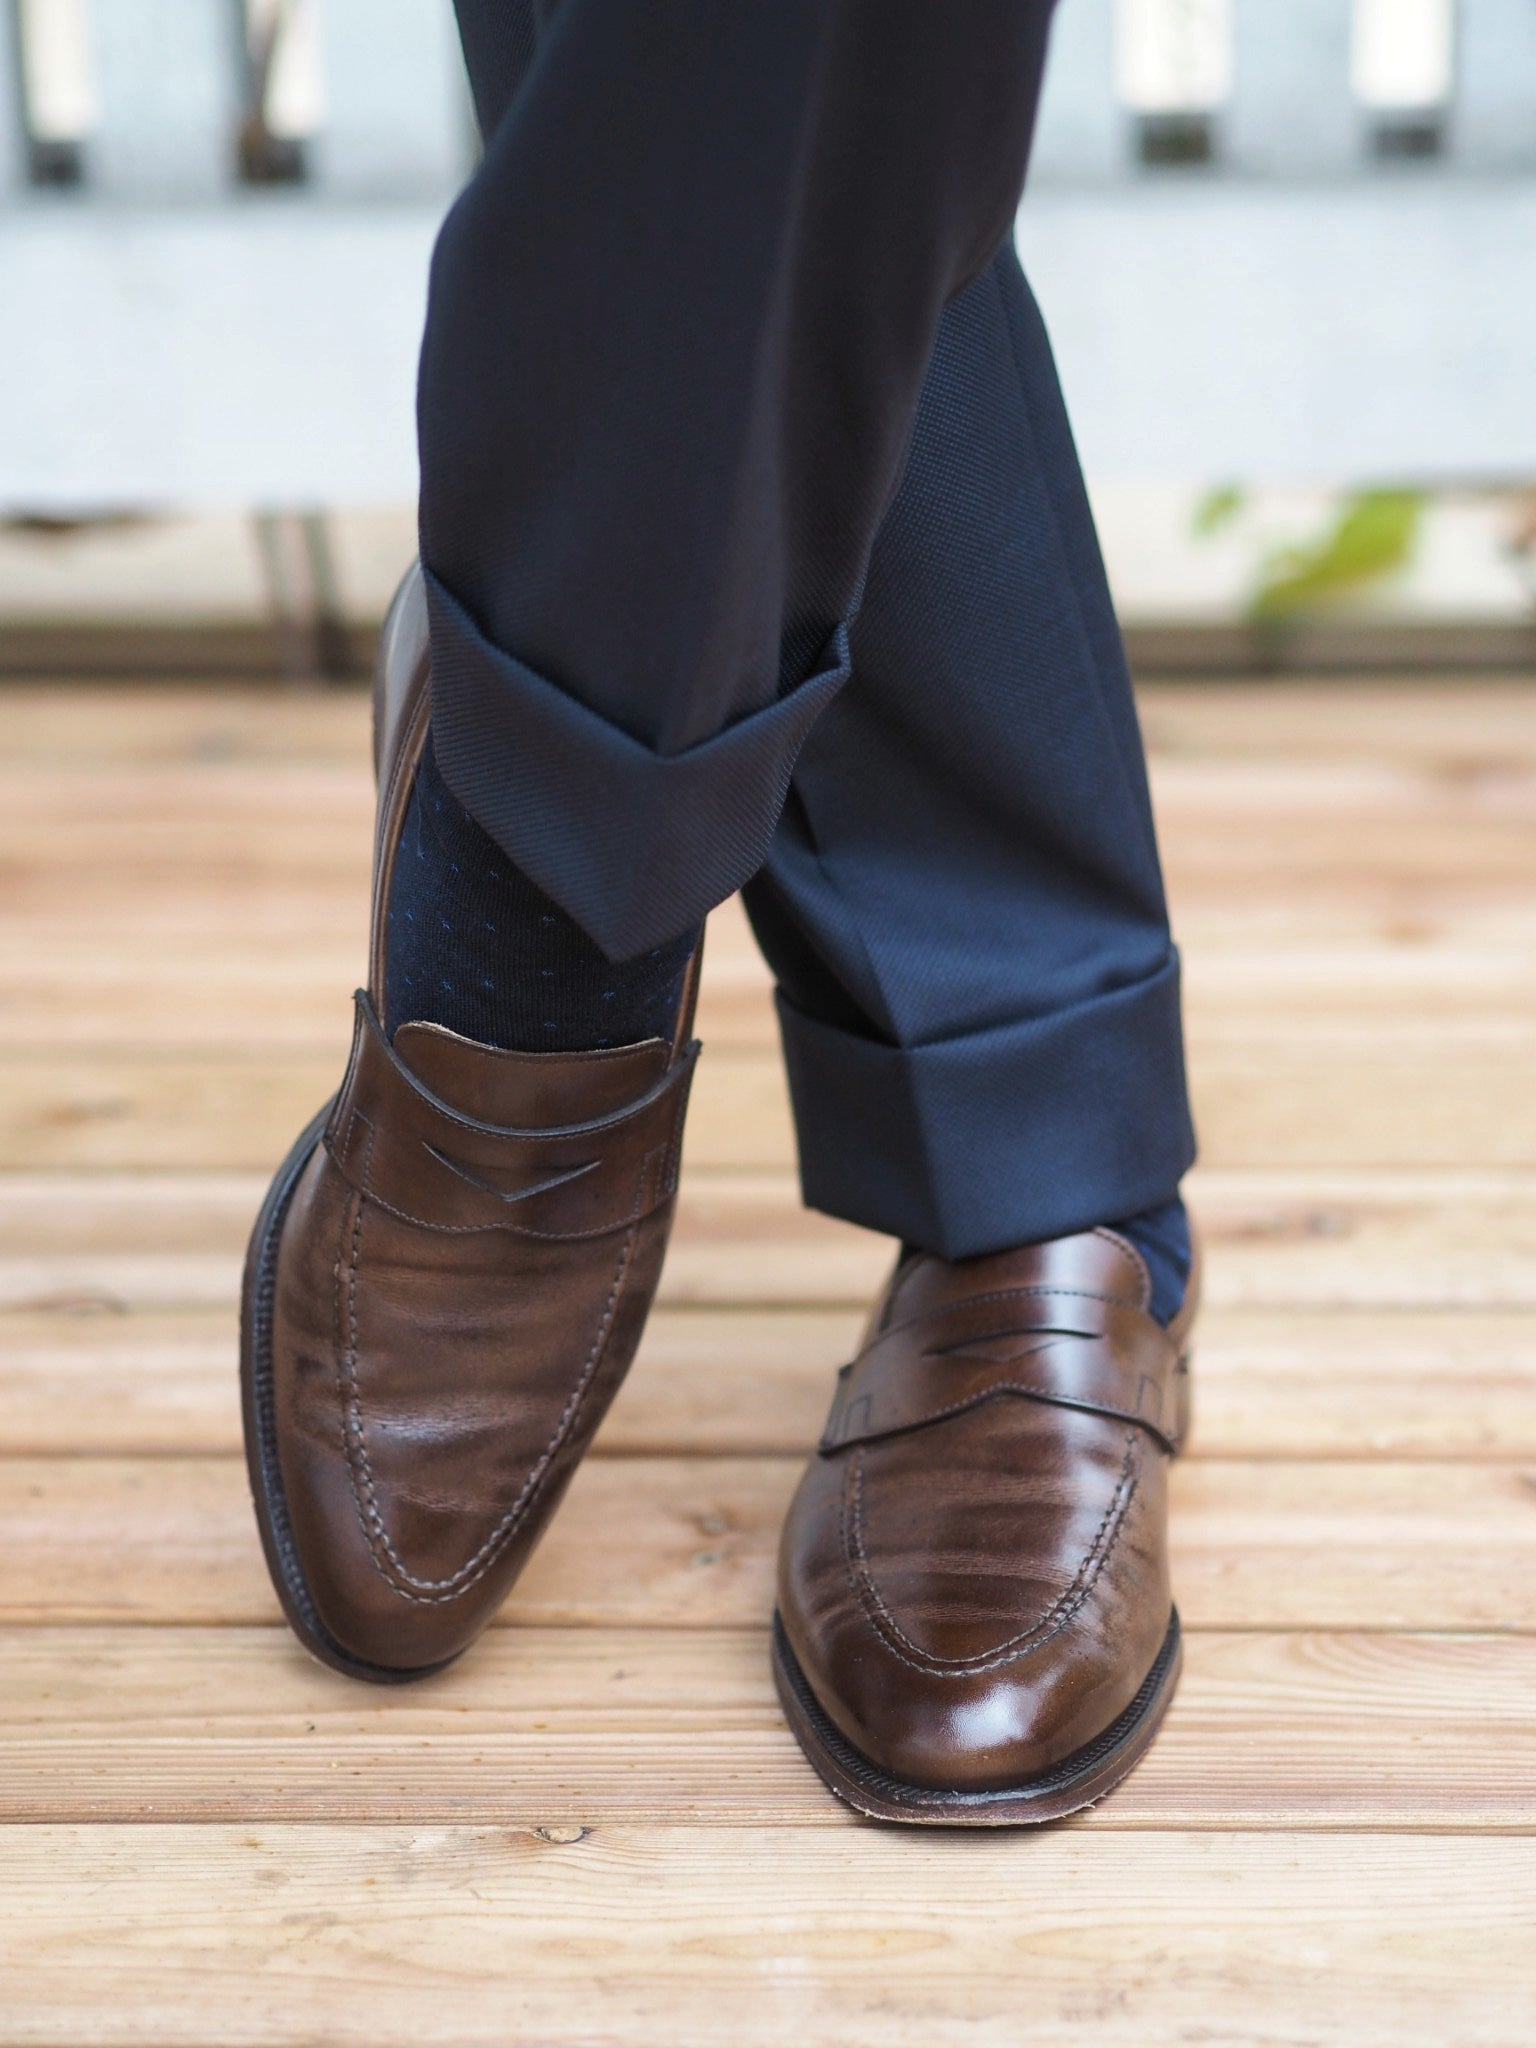 Blue suit for summer weddings party - Calf leather penny loafers with blue suit and socks